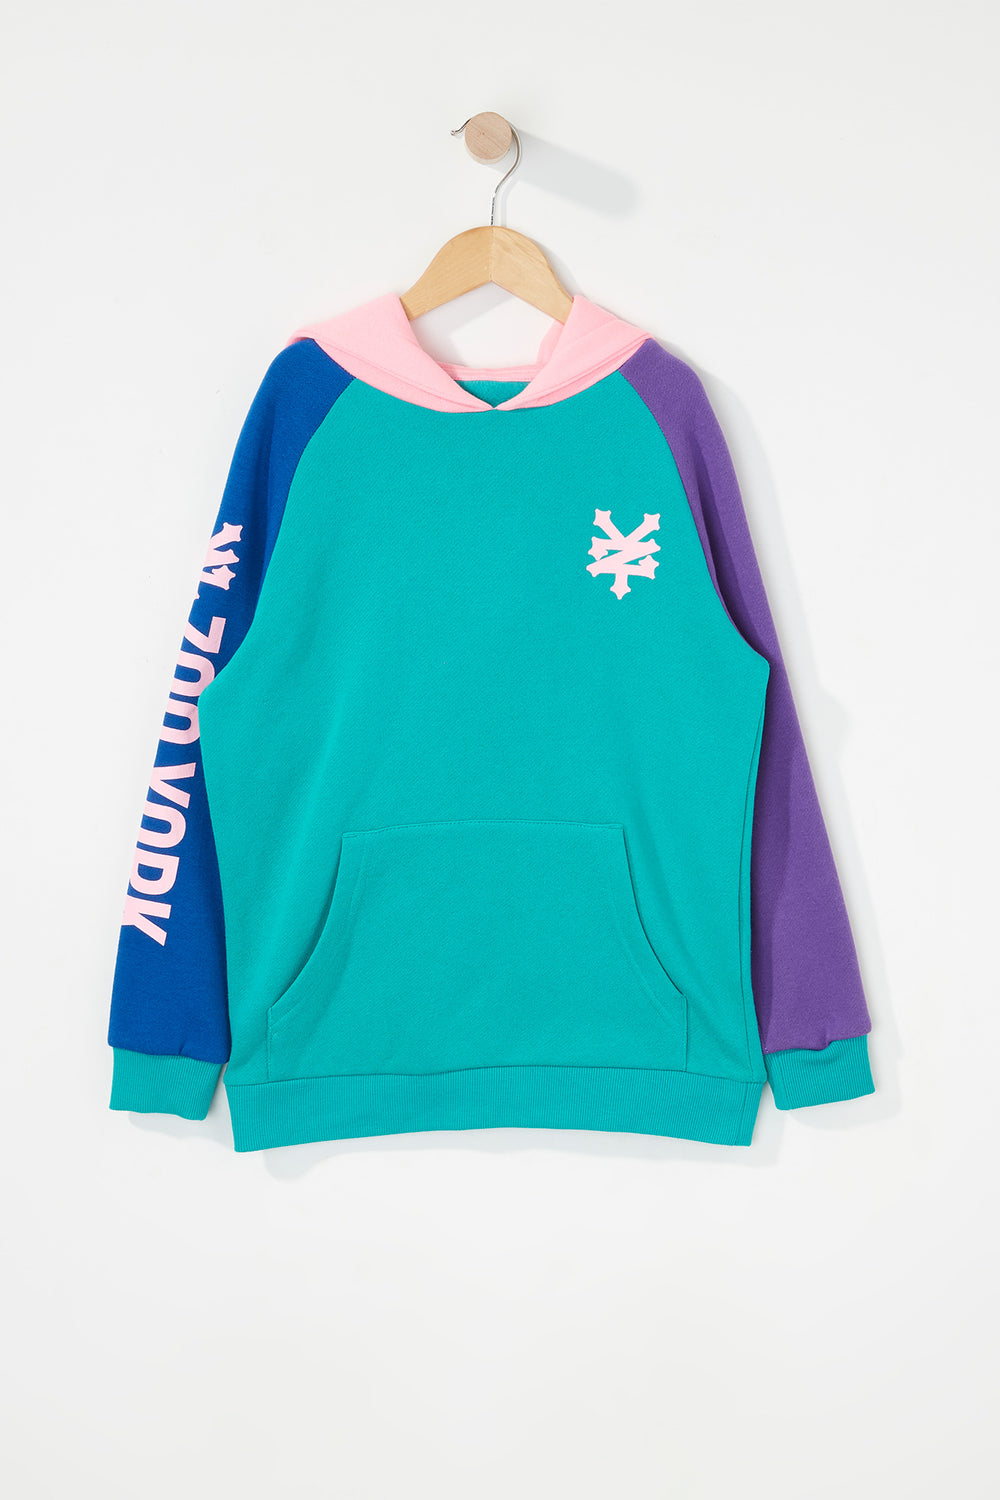 Zoo York Boys 90s Style Colour Block Hoodie Jade